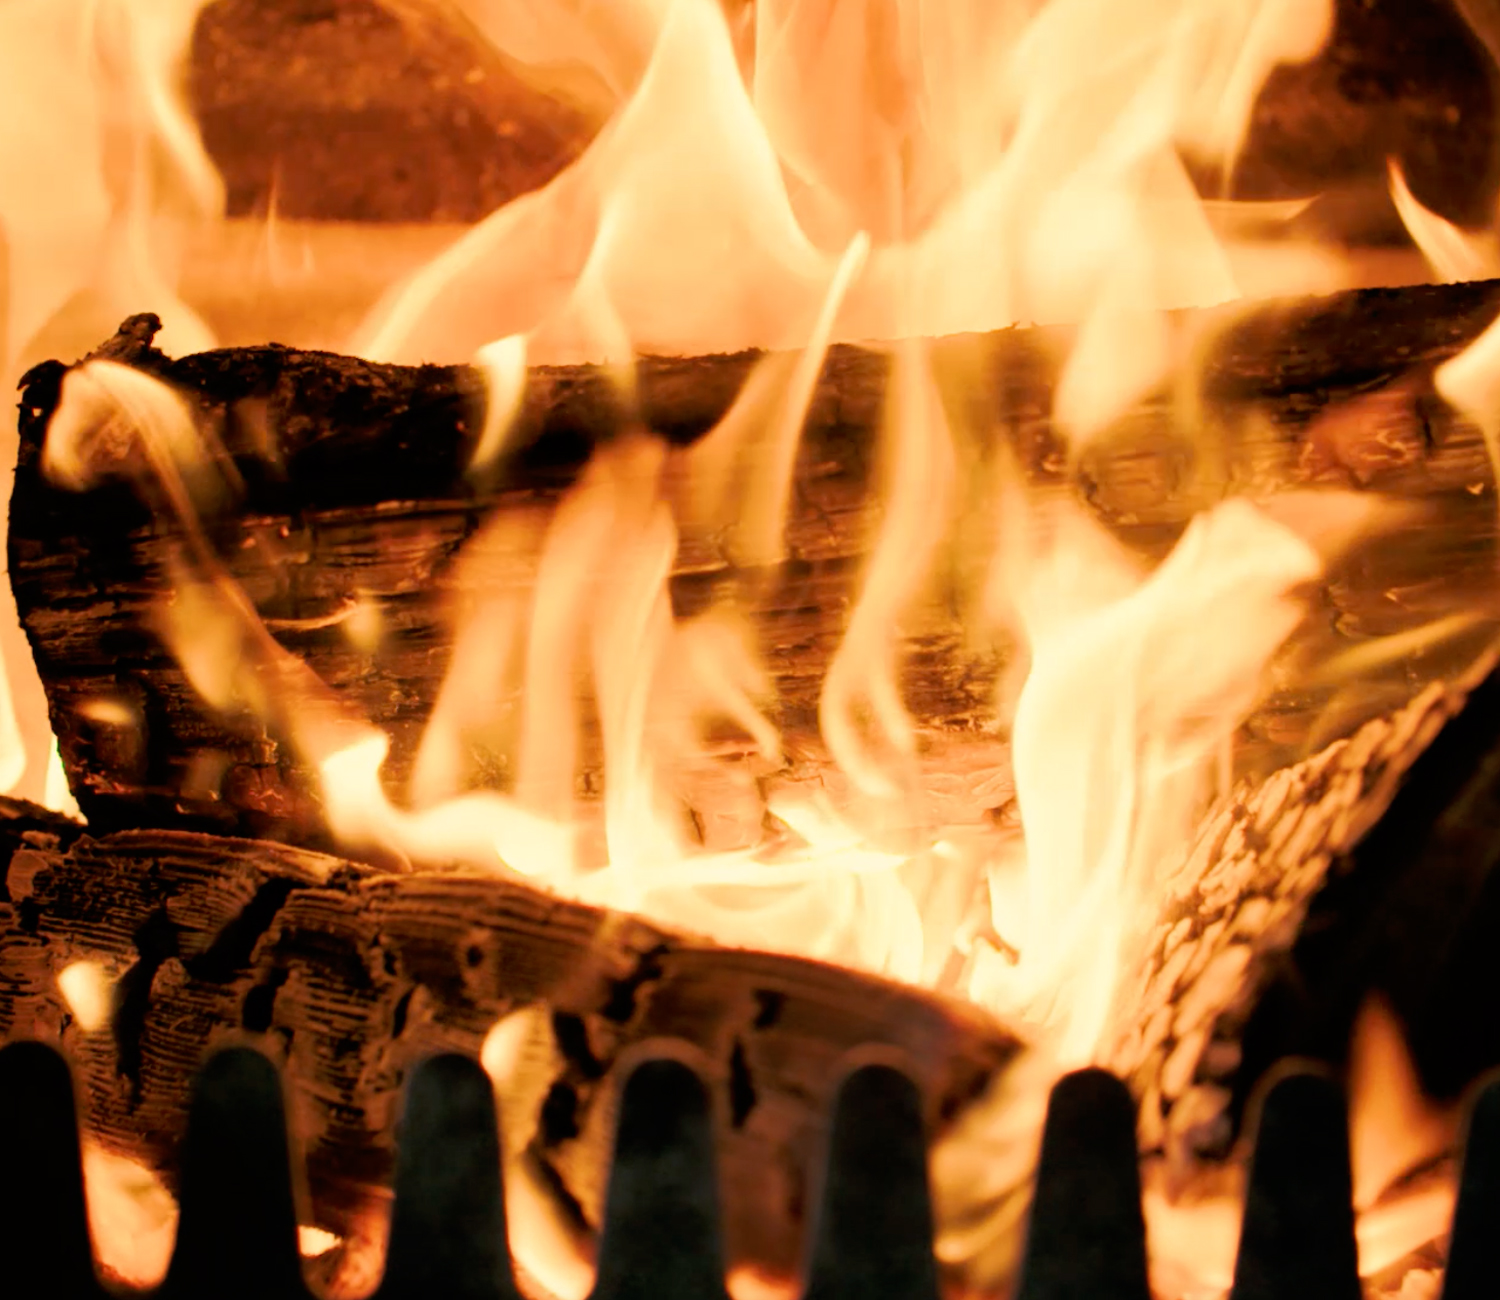 See Ampthill Fireplaces story...